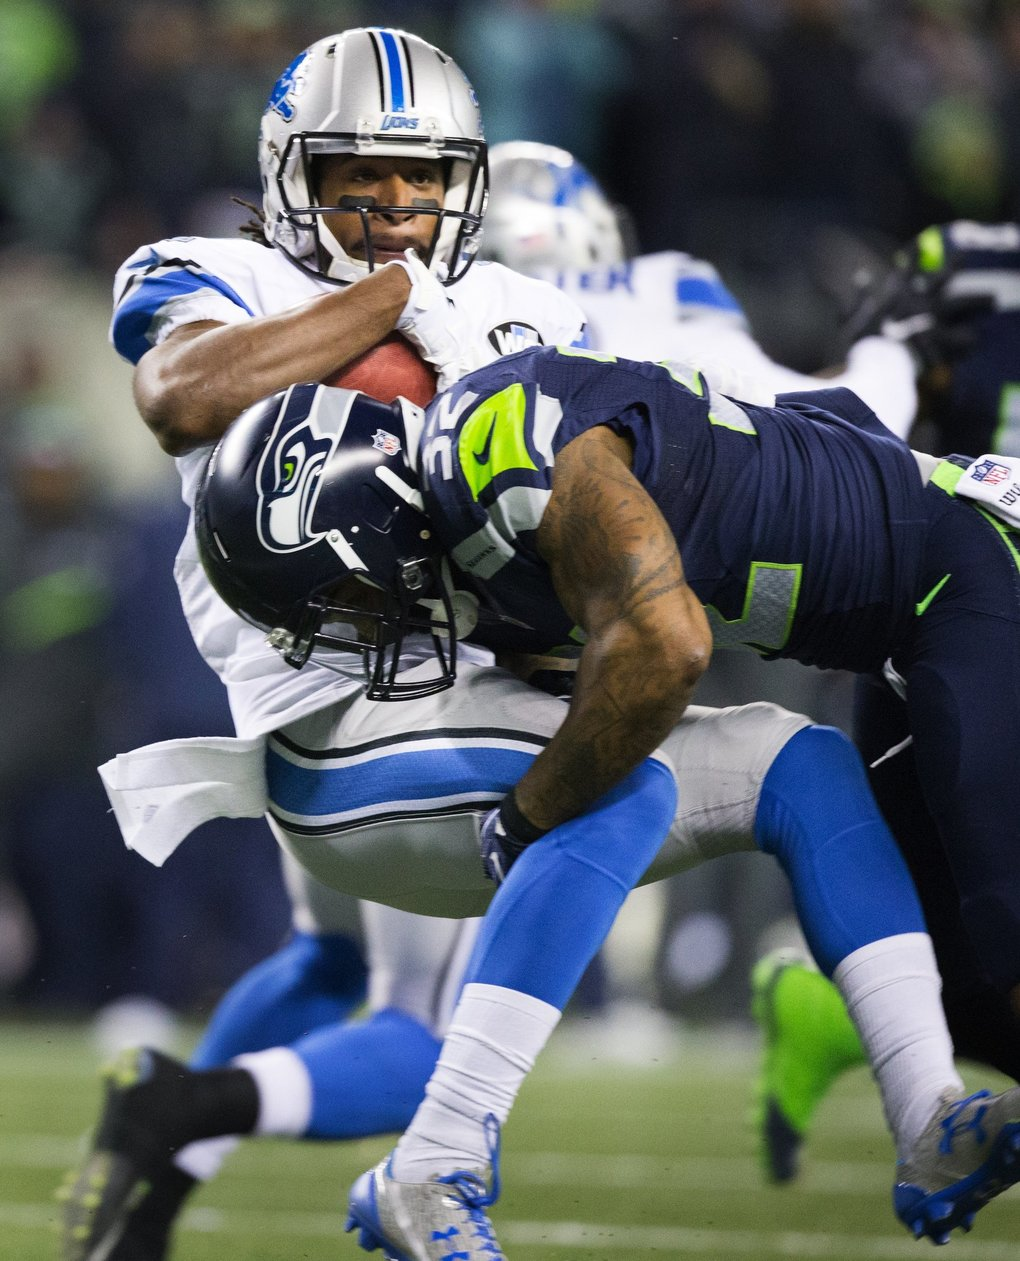 Seahawks strong safety Jeron Johnson tackles Detroit Lions wide receiver Andre Roberts for a kick return of only 19 yards in the fourth quarter.  (Lindsey Wasson / The Seattle Times)